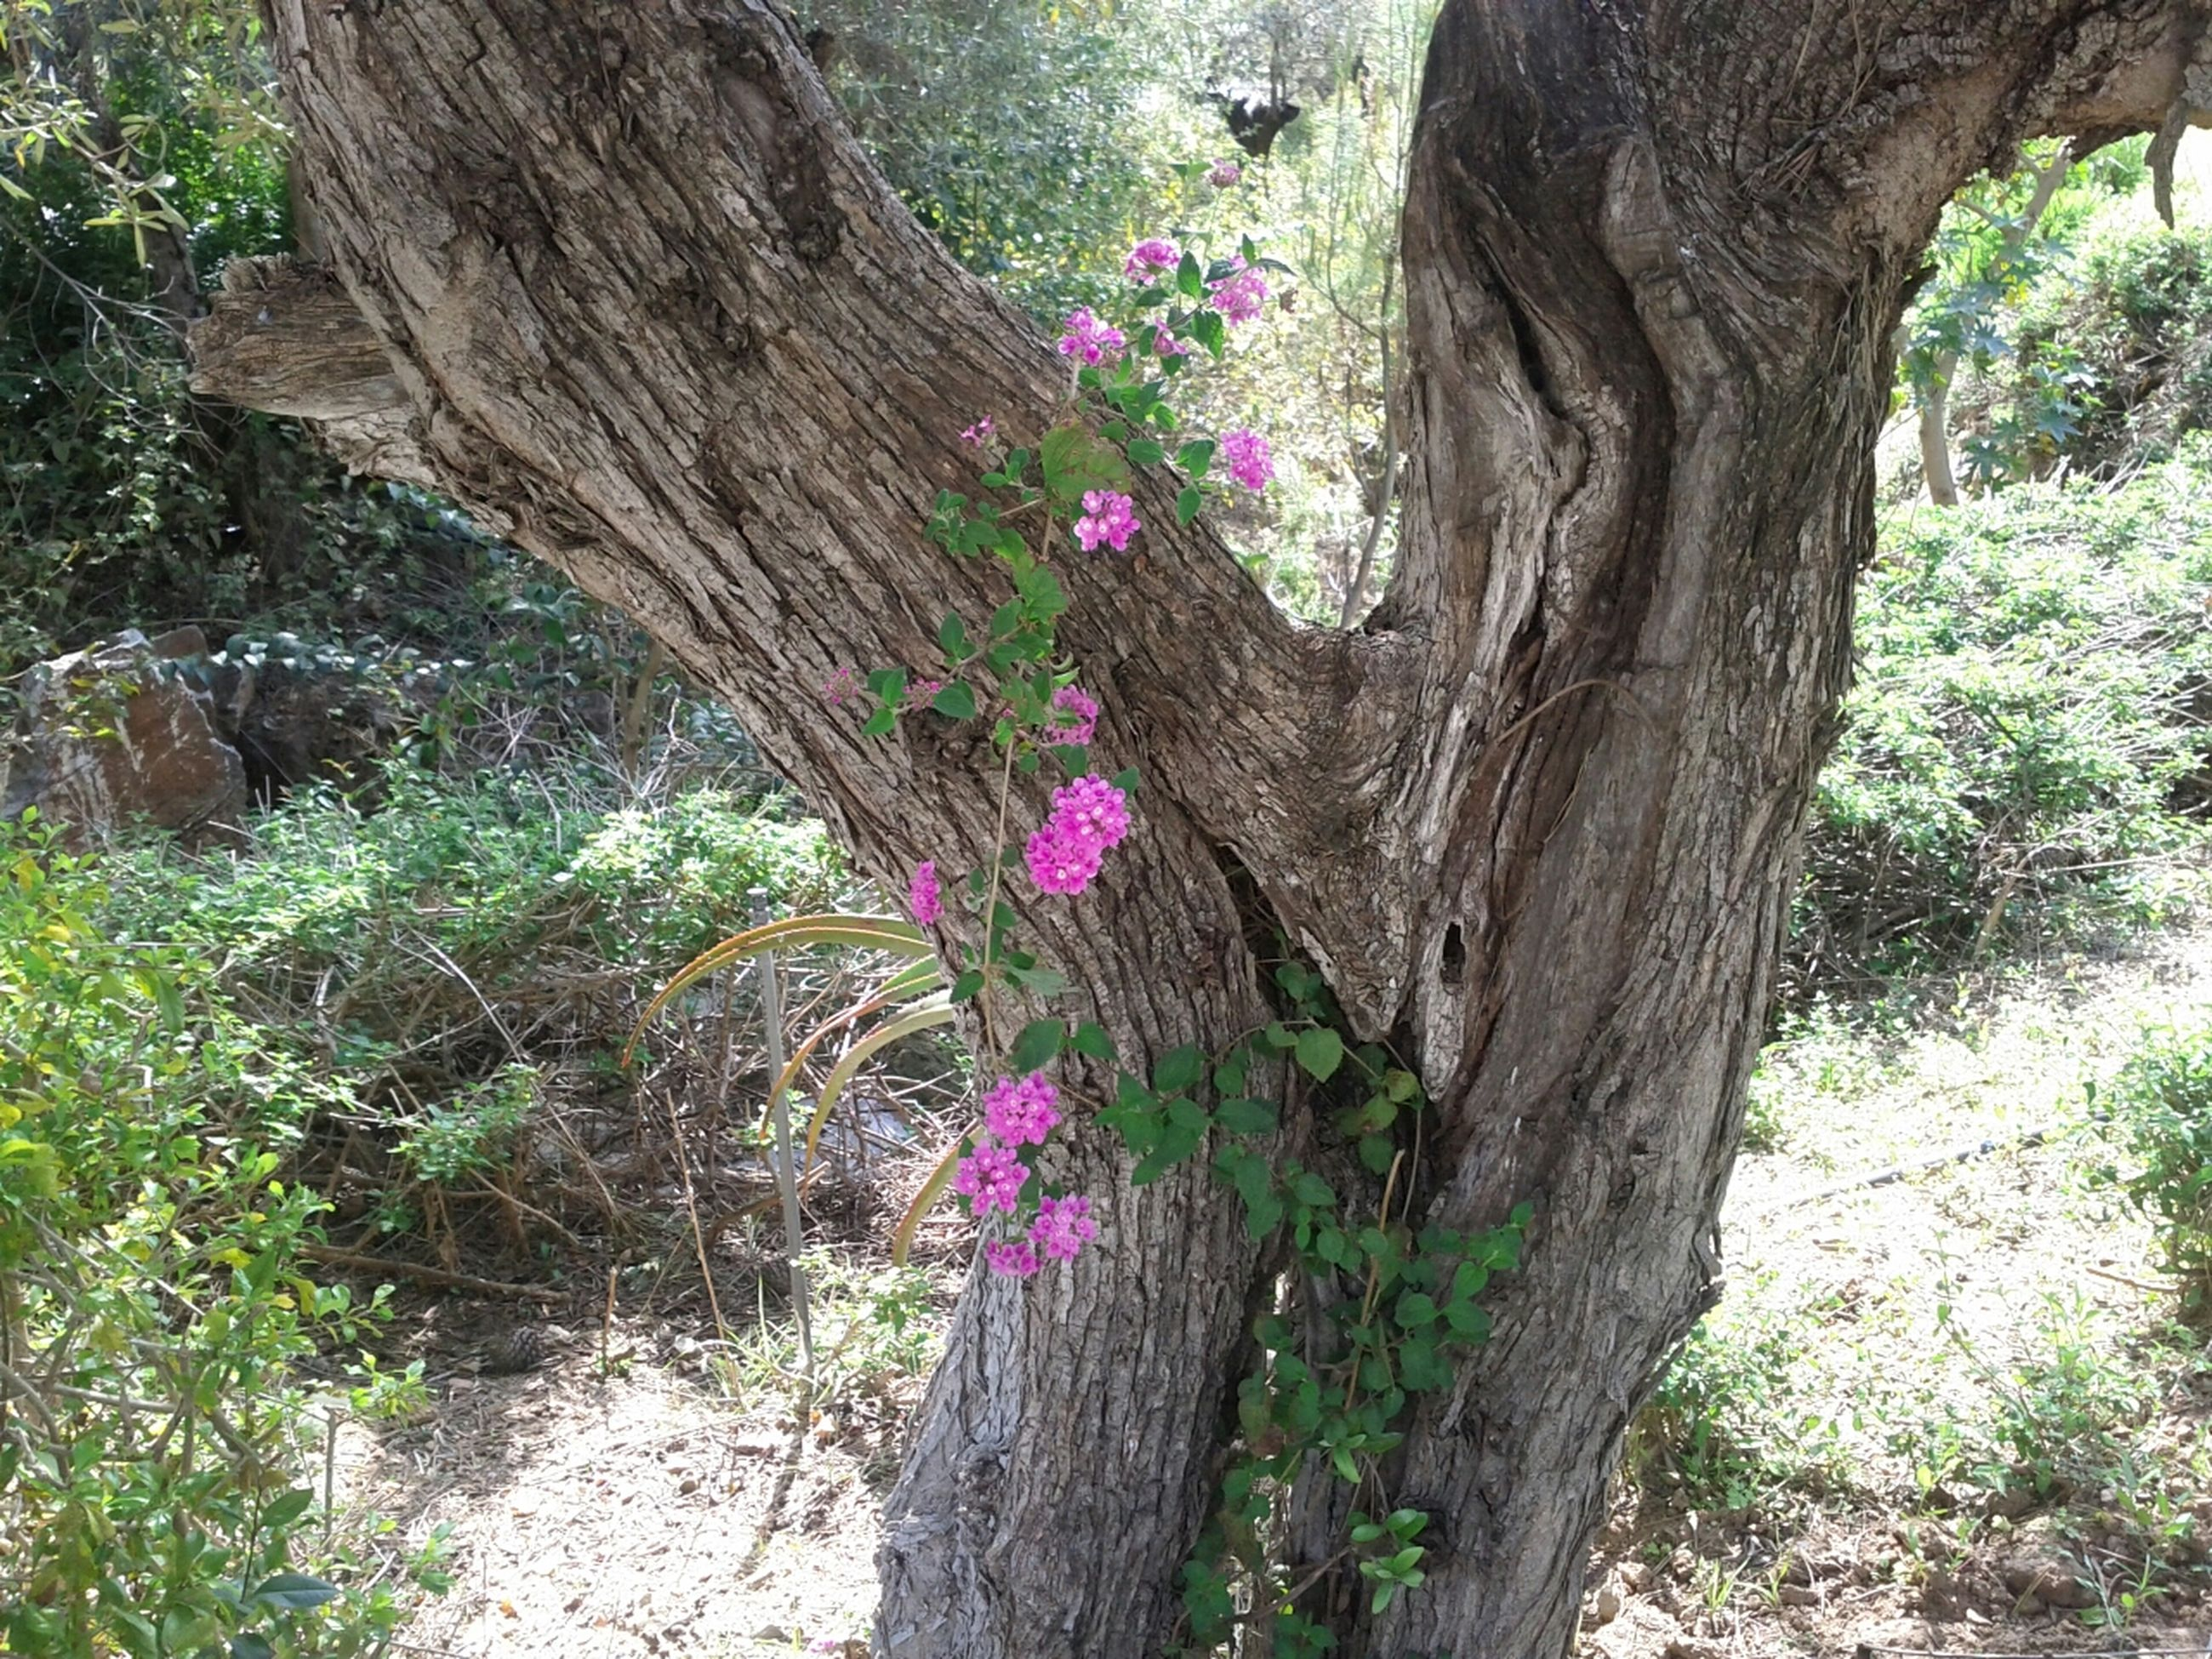 tree trunk, growth, flower, tree, nature, beauty in nature, plant, tranquility, fragility, freshness, growing, branch, close-up, purple, outdoors, day, botany, focus on foreground, wood - material, sunlight